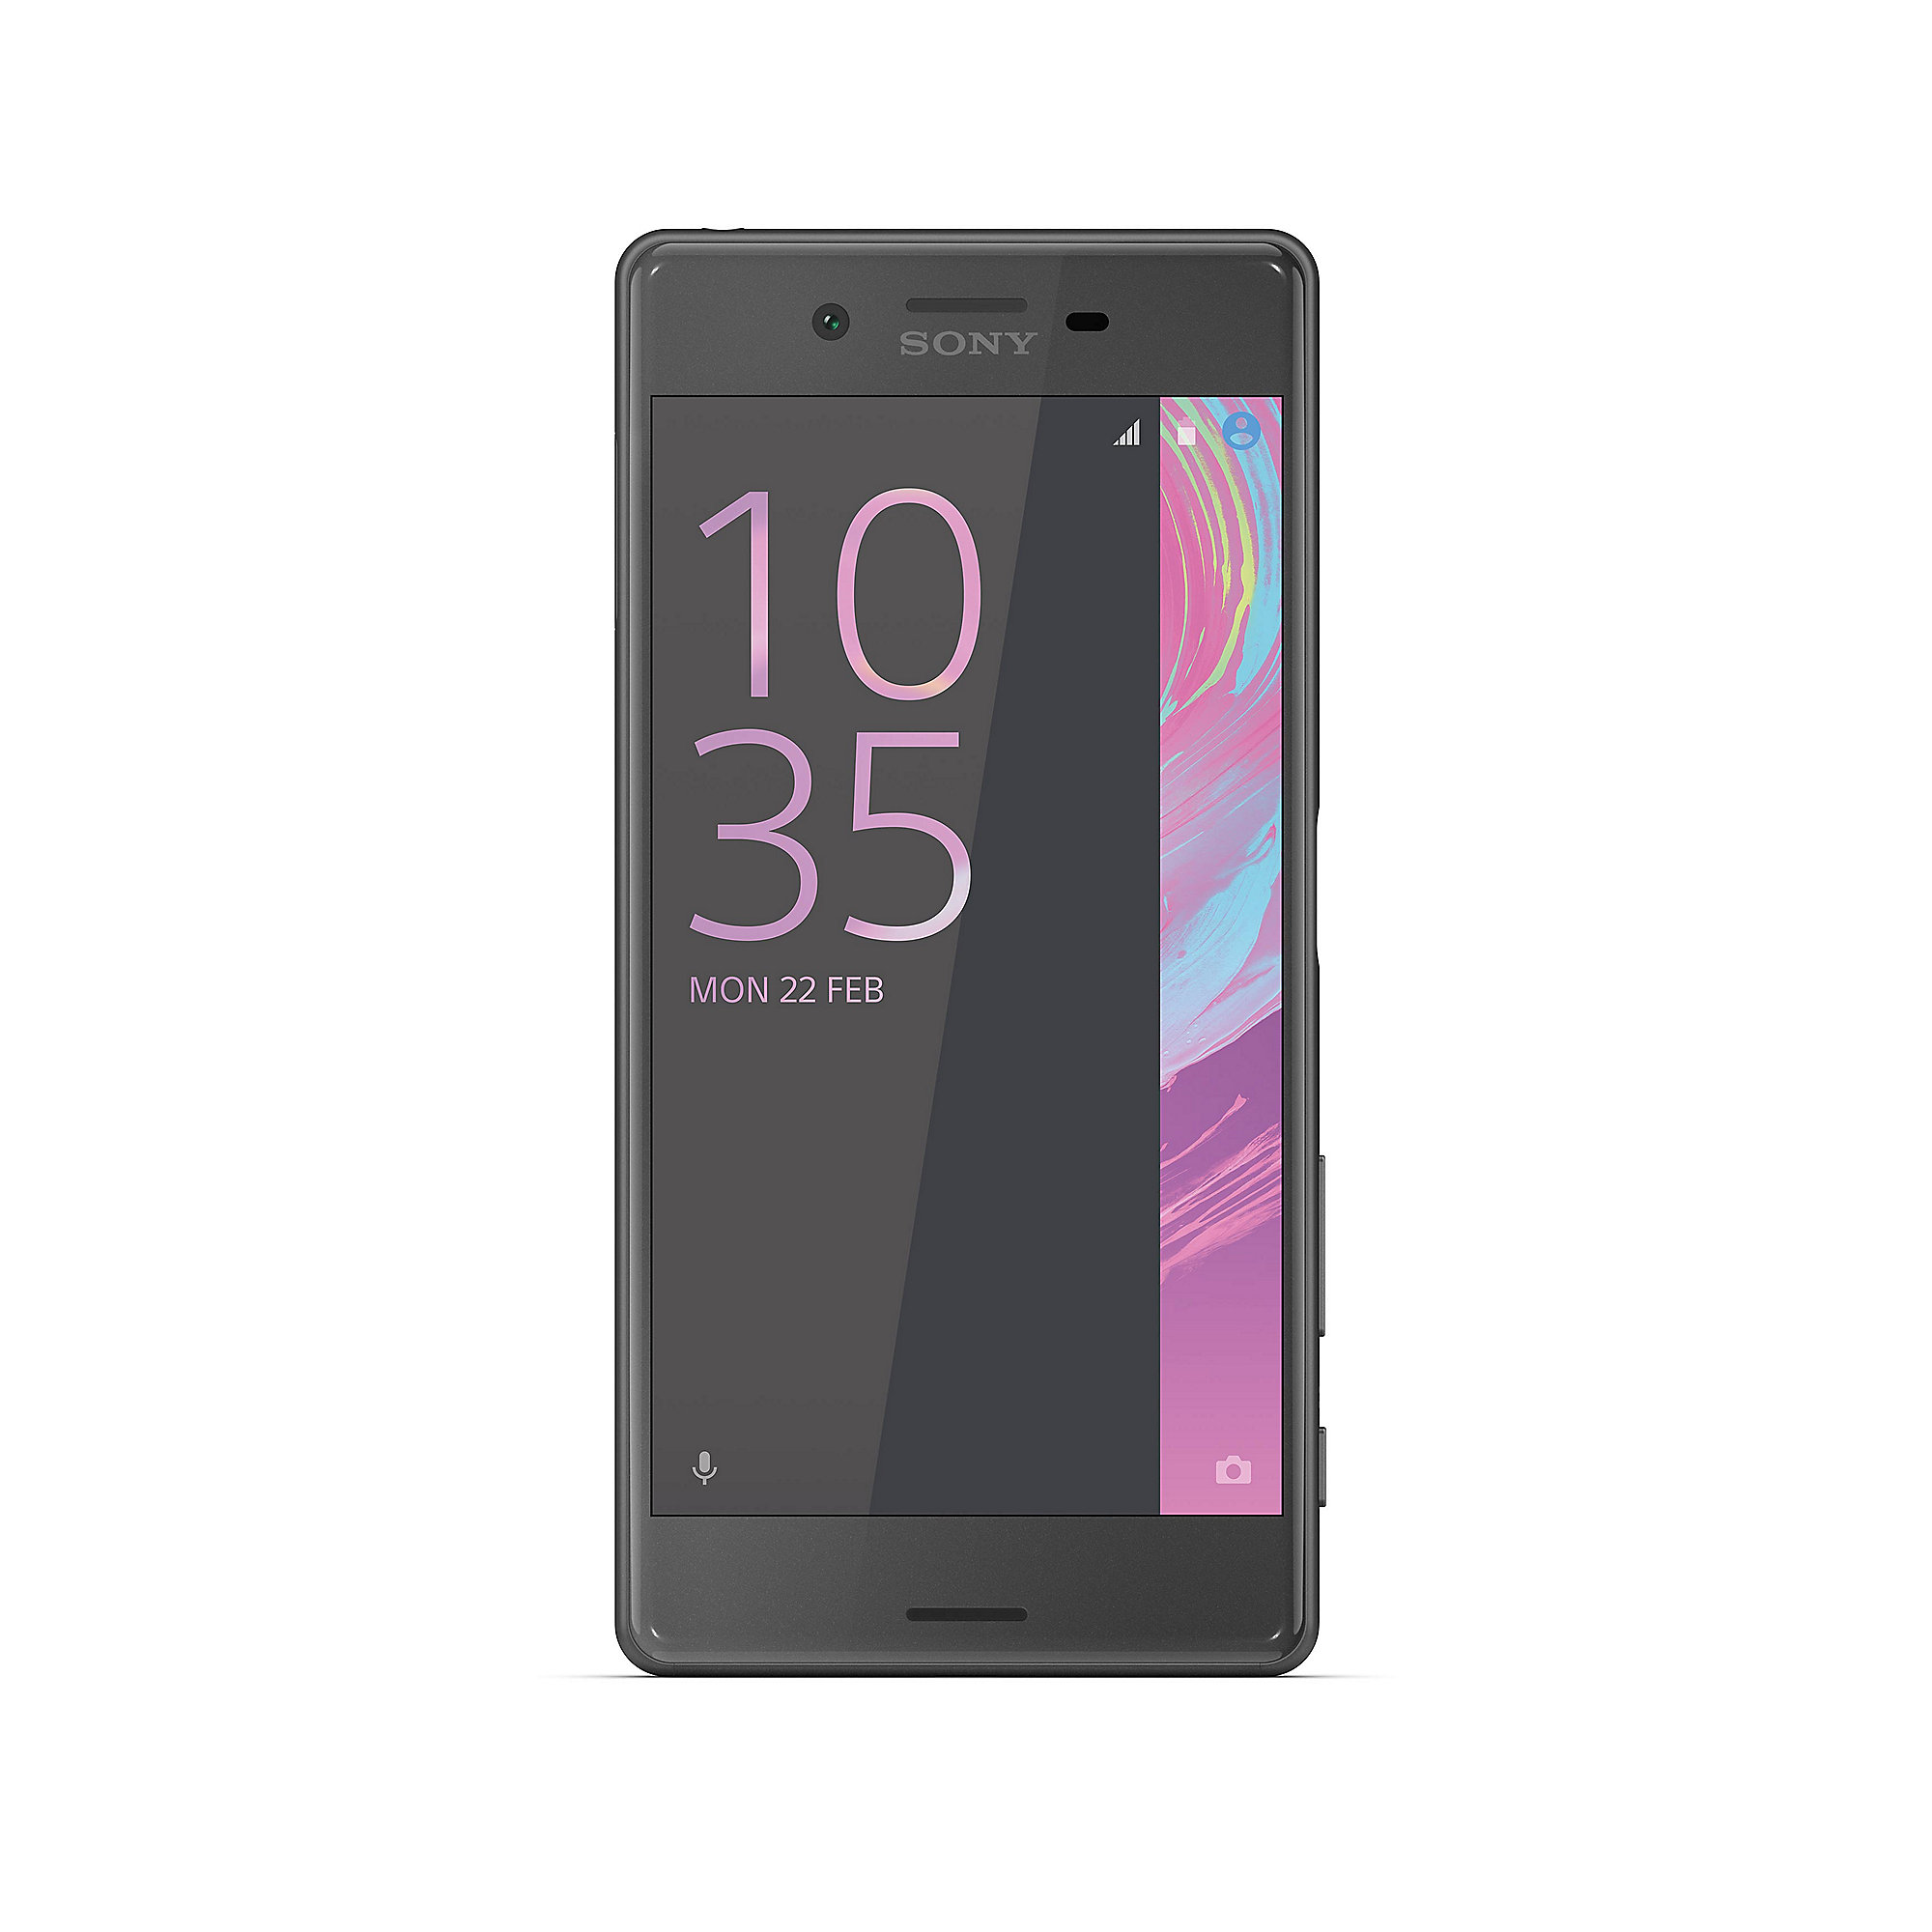 Sony Xperia X graphit-schwarz Android Smartphone